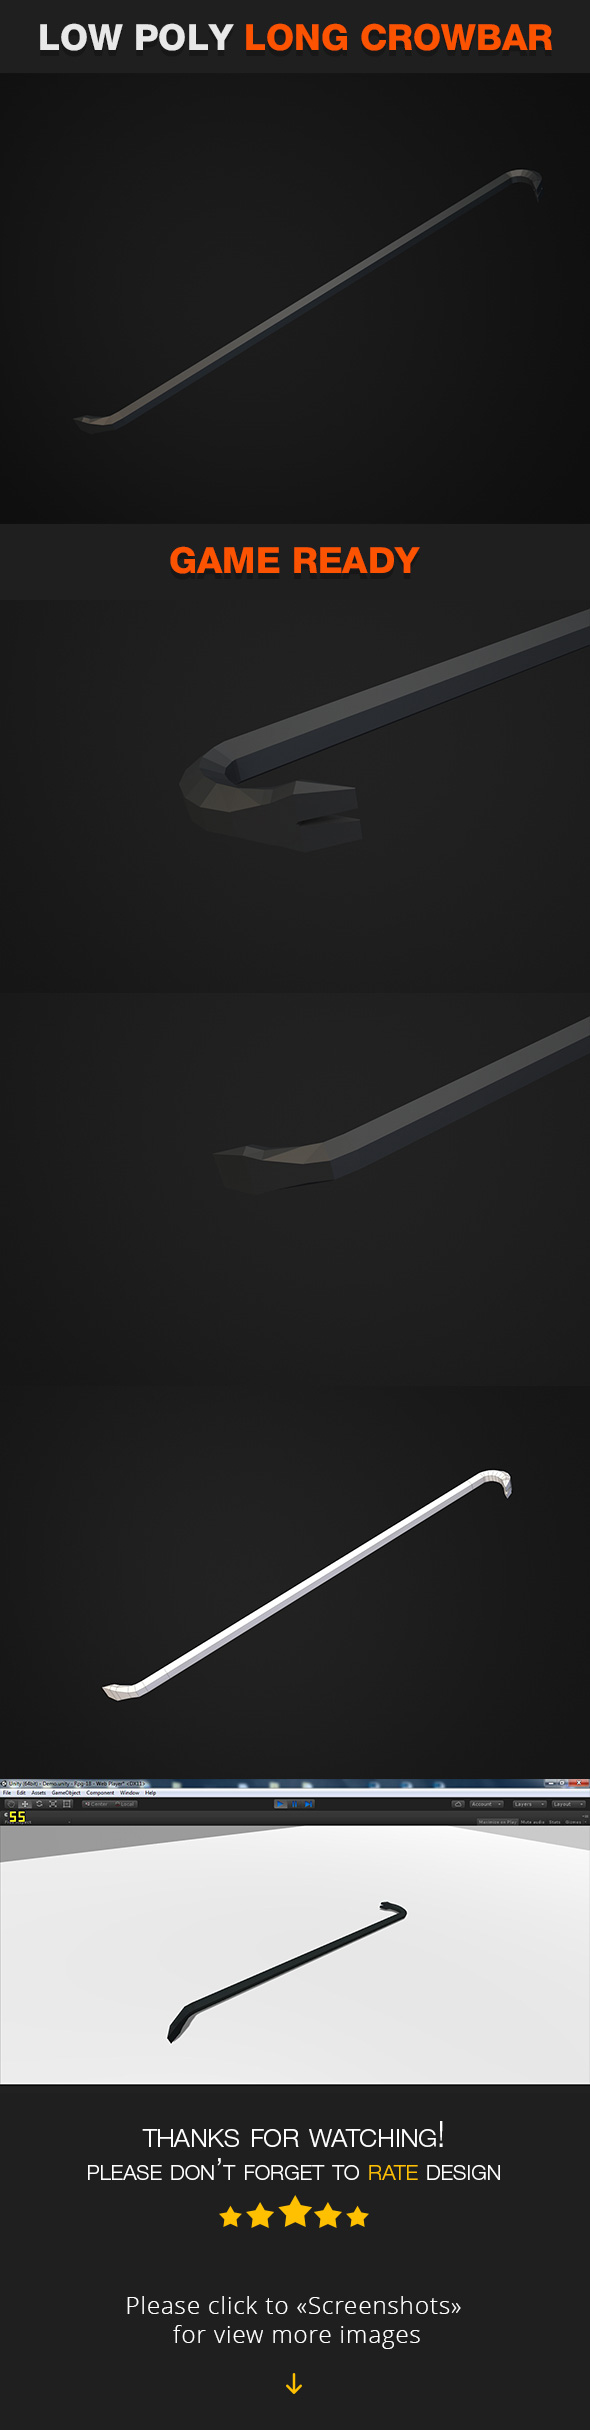 Low Poly Long Crowbar - 3DOcean Item for Sale